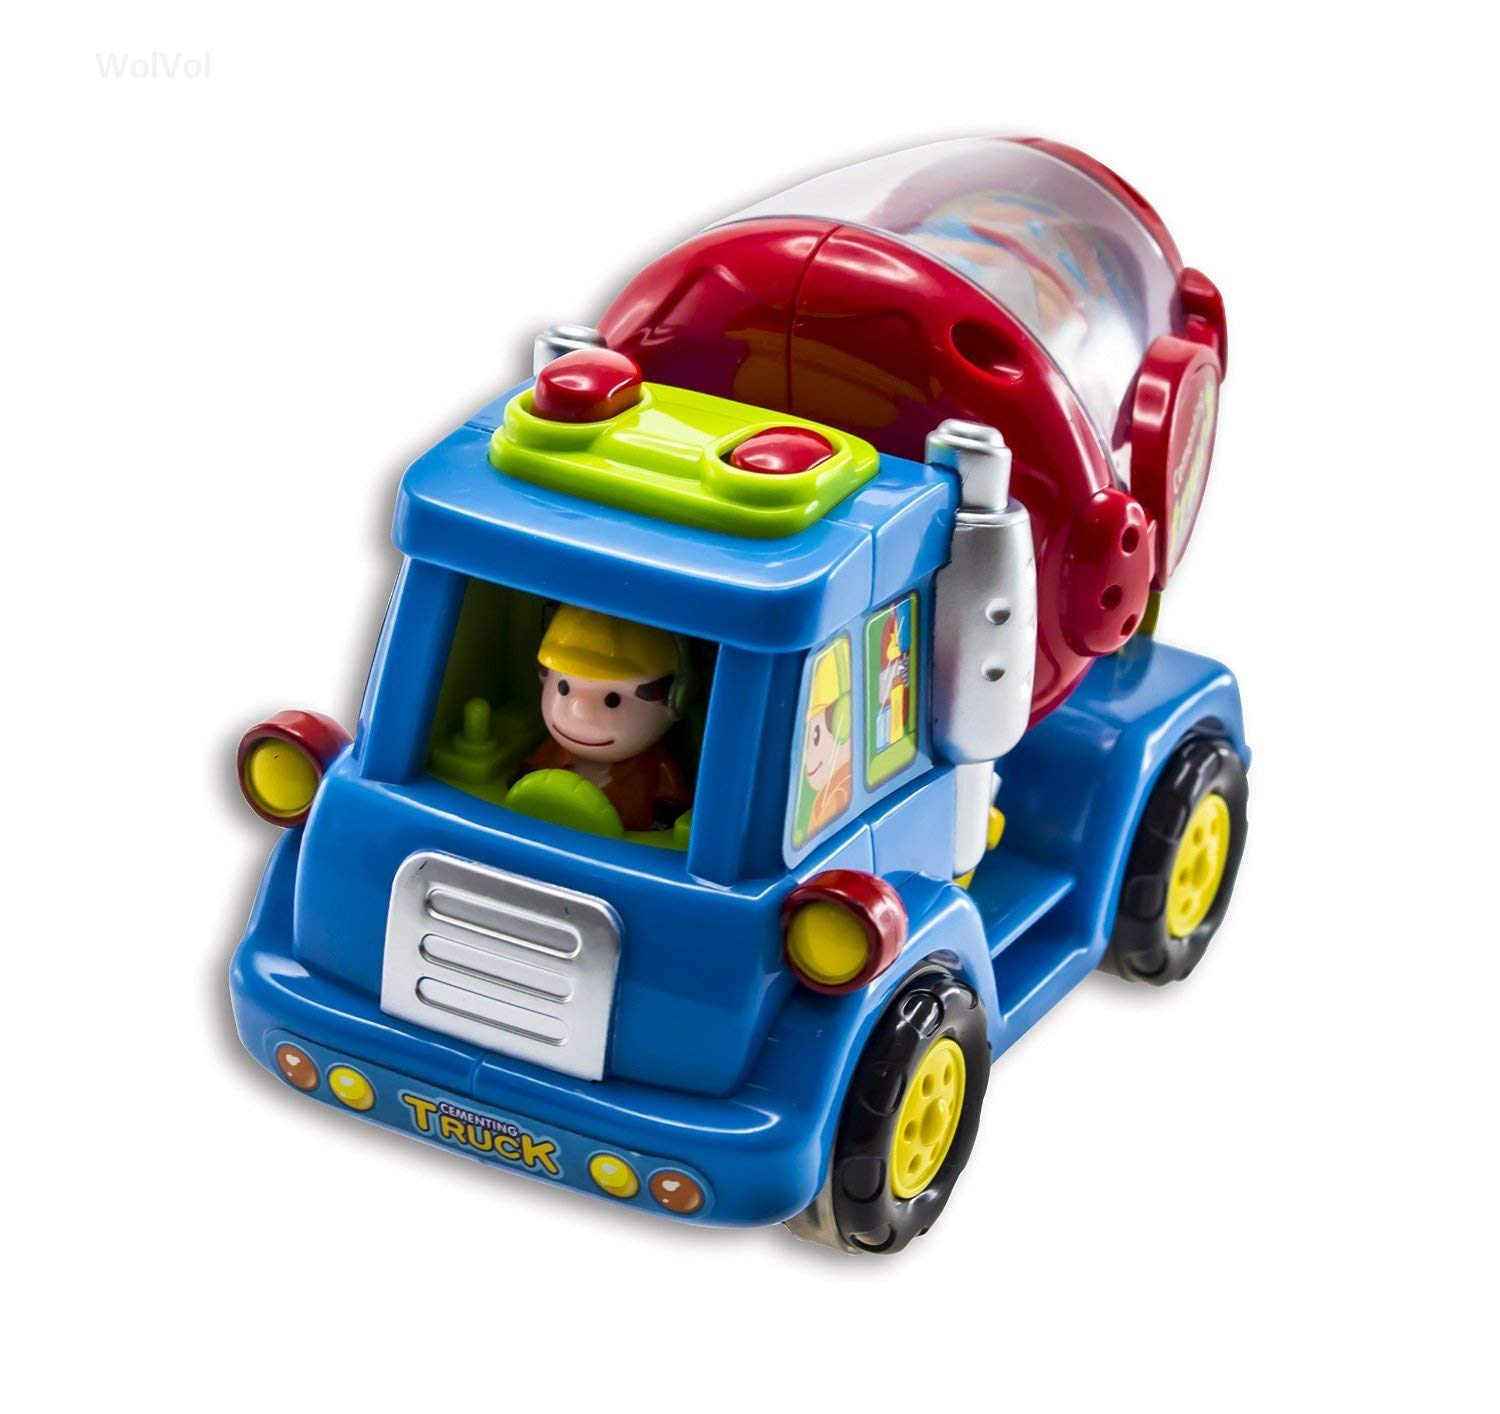 advanced play push and go friction power car toys street sweeper cement mixer harvester truck construction toys for toddler kids boys set of